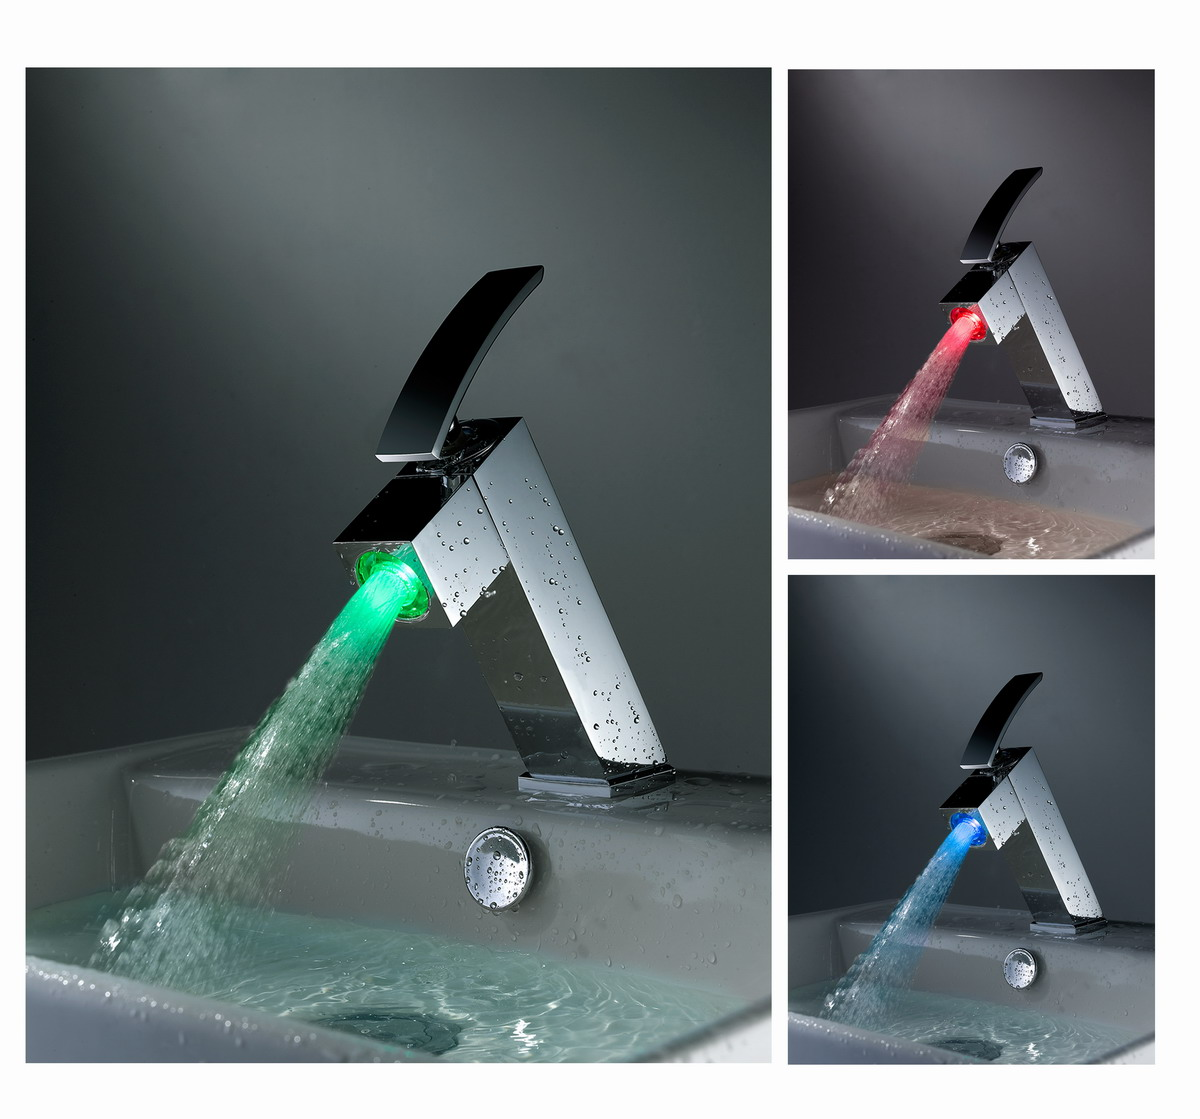 Led Faucets Sell Led Faucet Mixer Tap Shower Sanitary Ware Id 707731